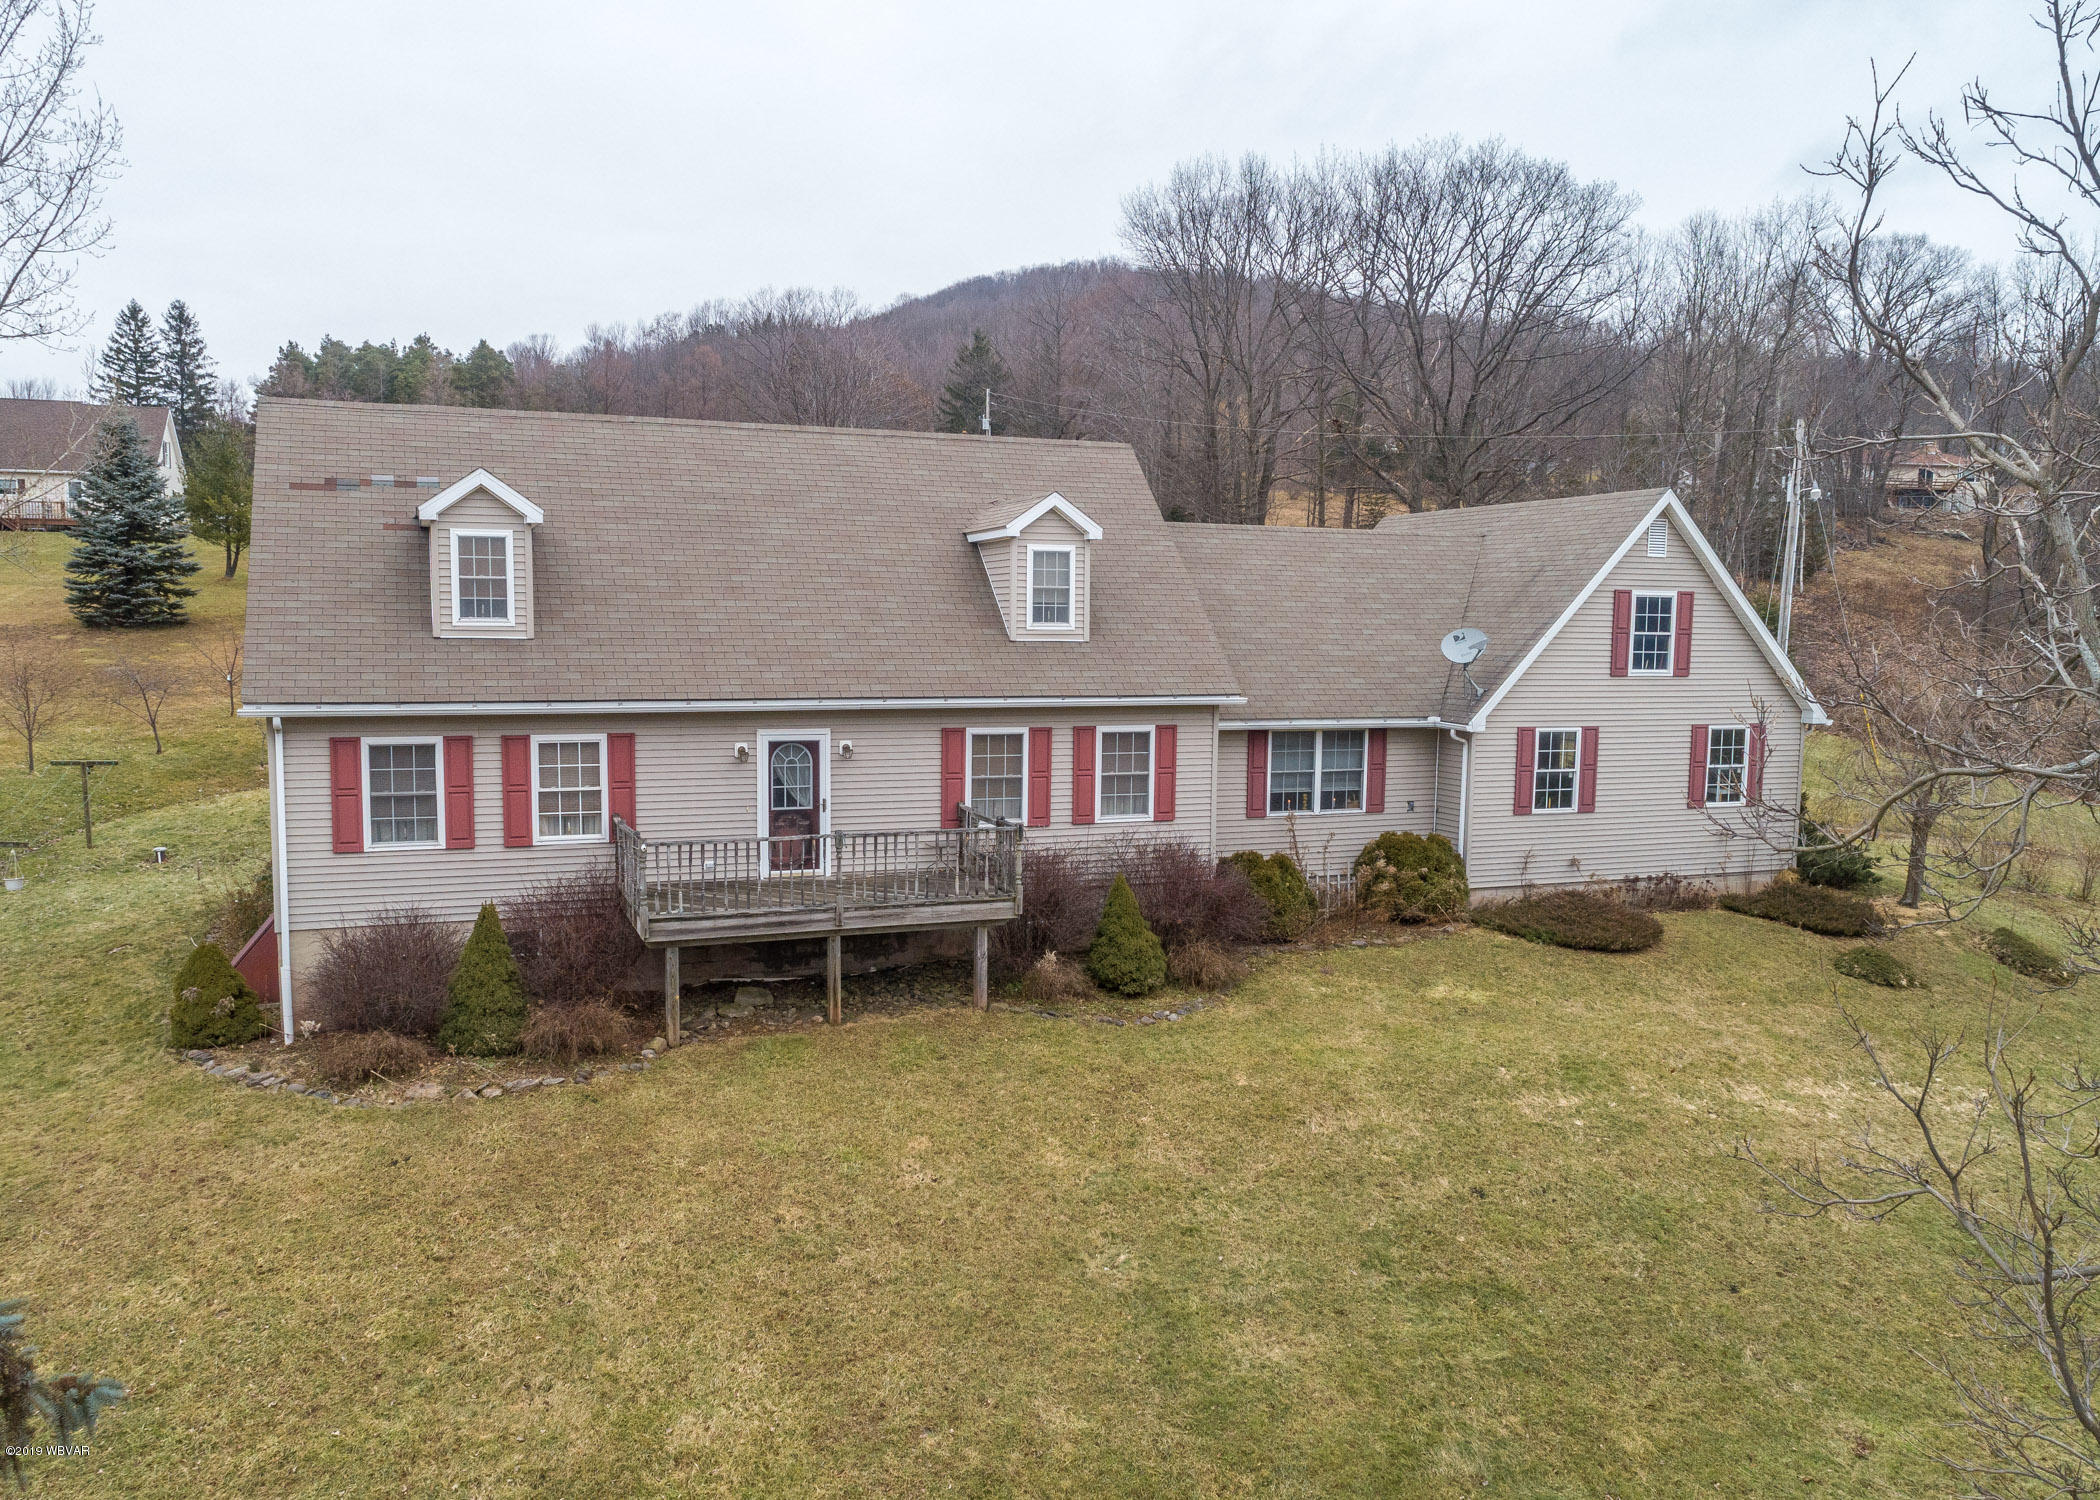 16187 PA-87 HIGHWAY,Dushore,PA 18614,3 Bedrooms Bedrooms,3 BathroomsBathrooms,Residential,PA-87,WB-86148